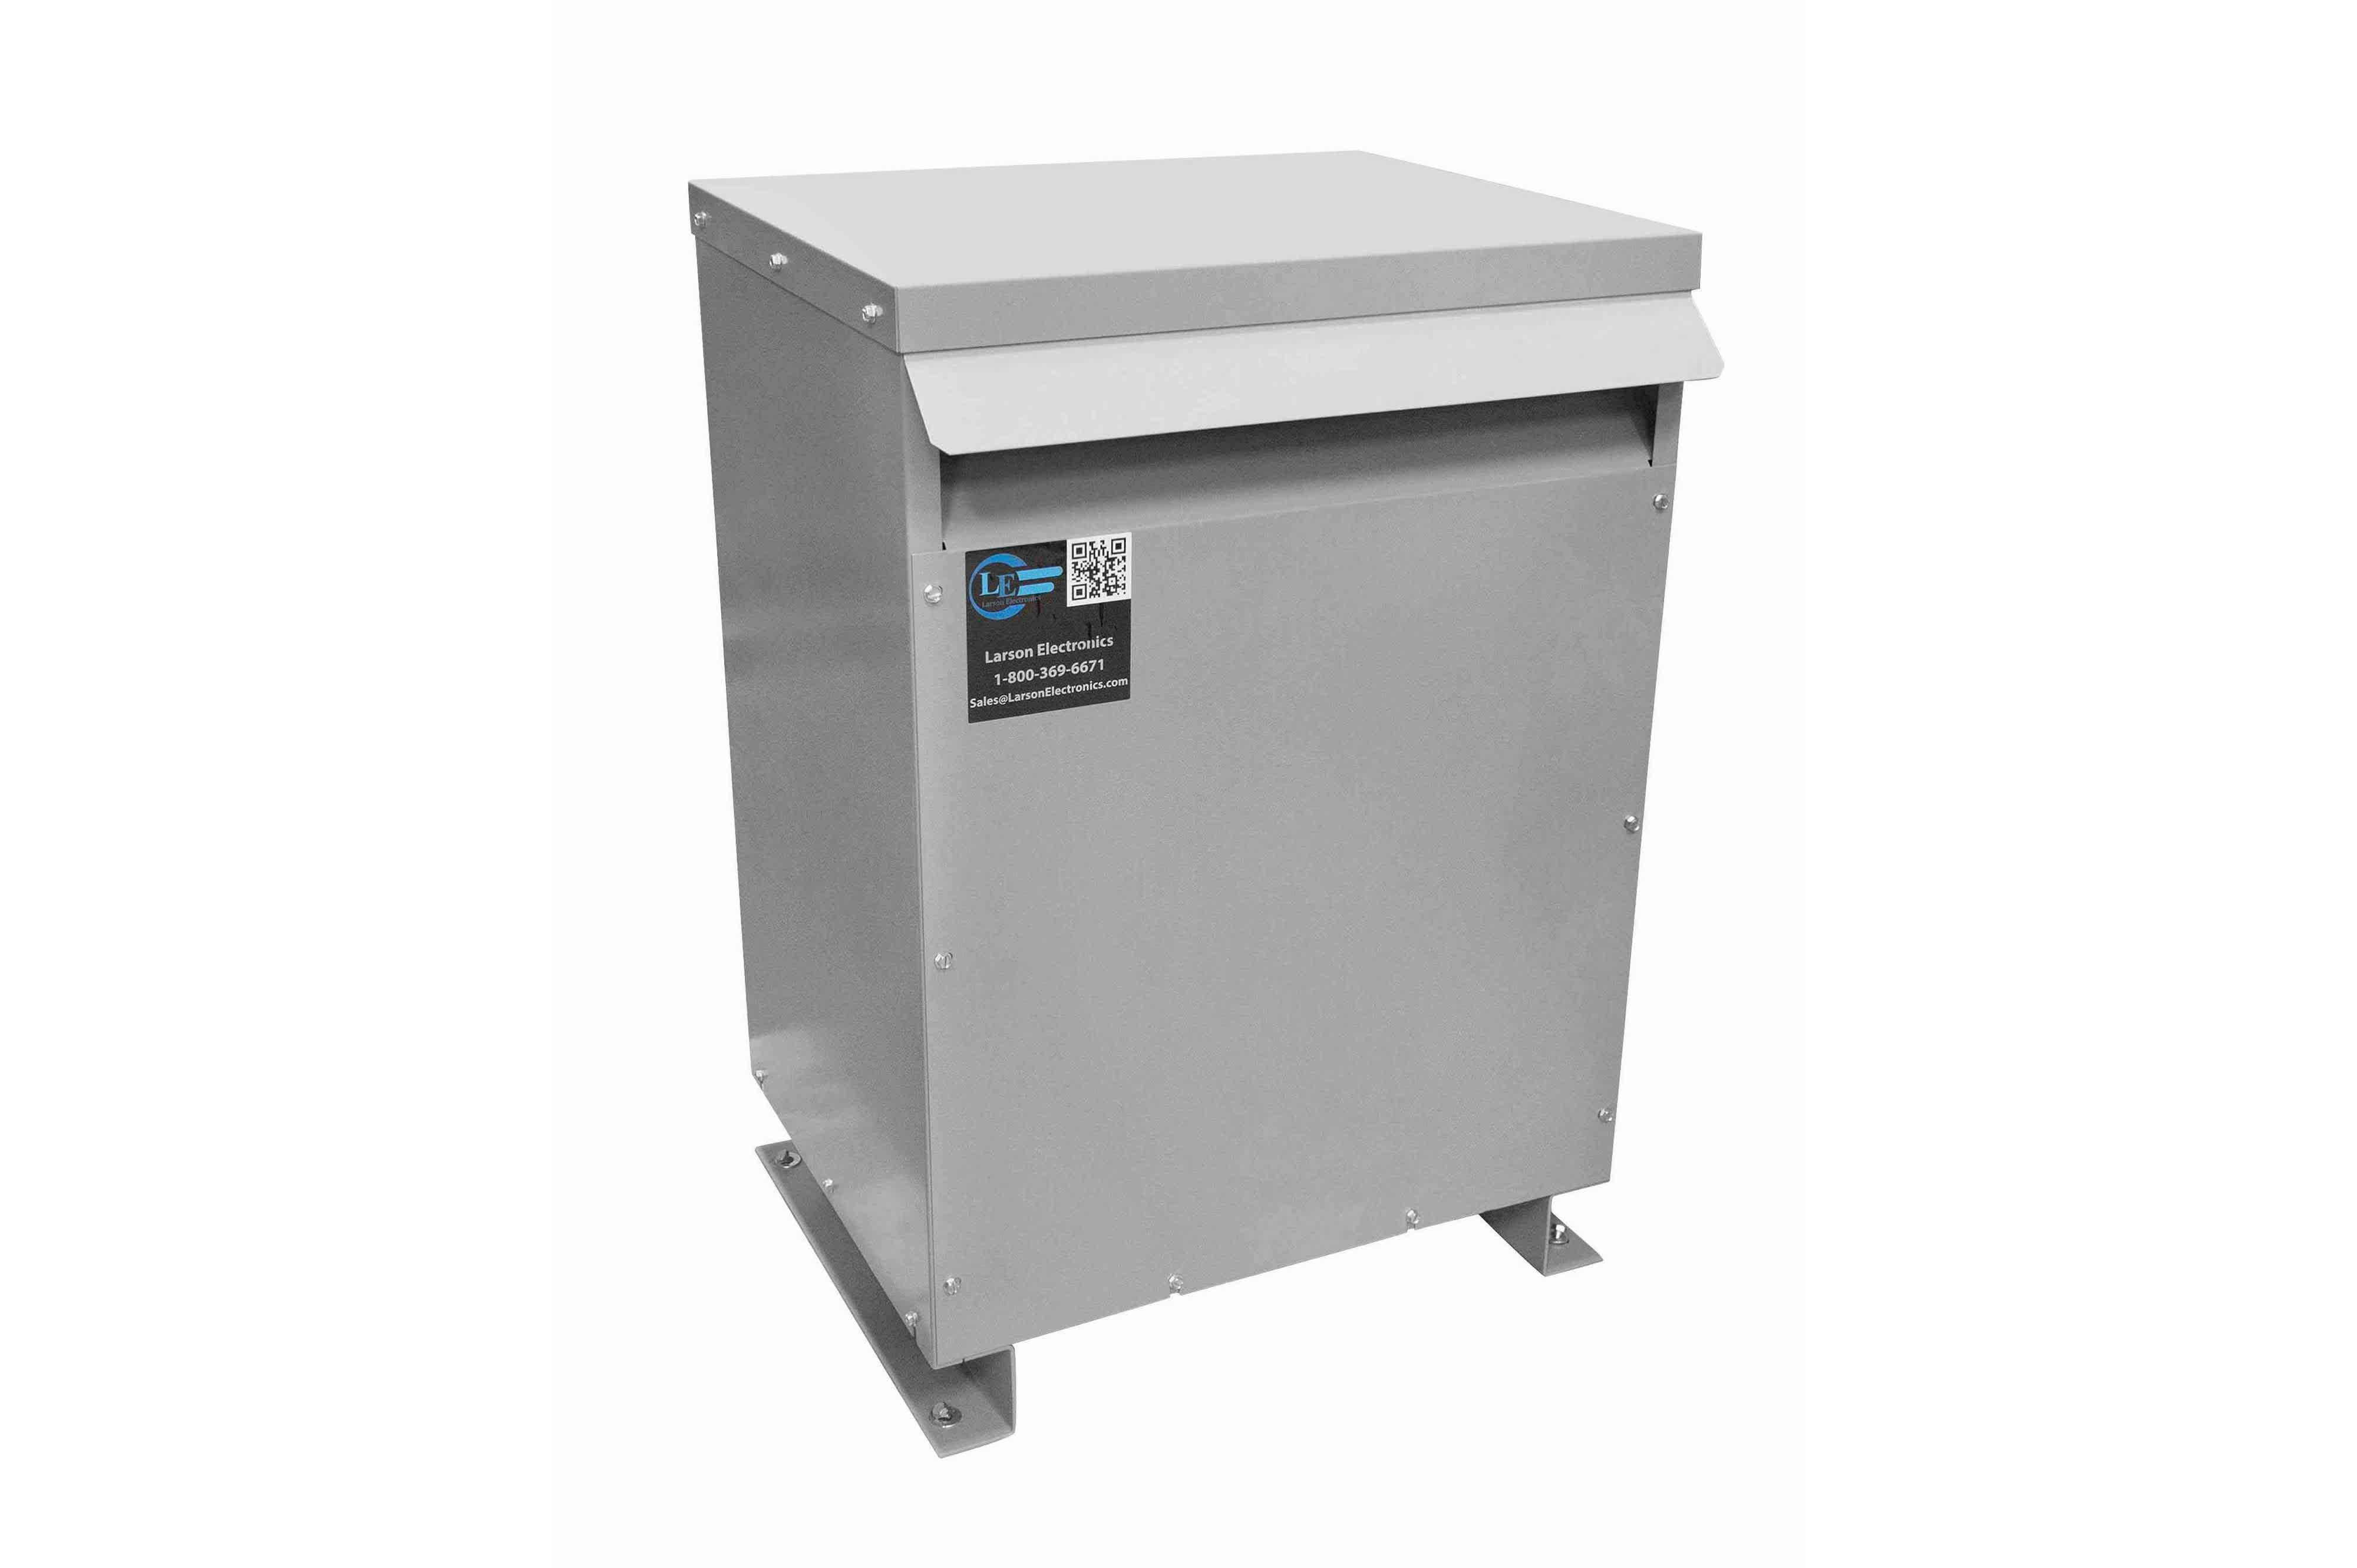 70 kVA 3PH Isolation Transformer, 460V Wye Primary, 600Y/347 Wye-N Secondary, N3R, Ventilated, 60 Hz